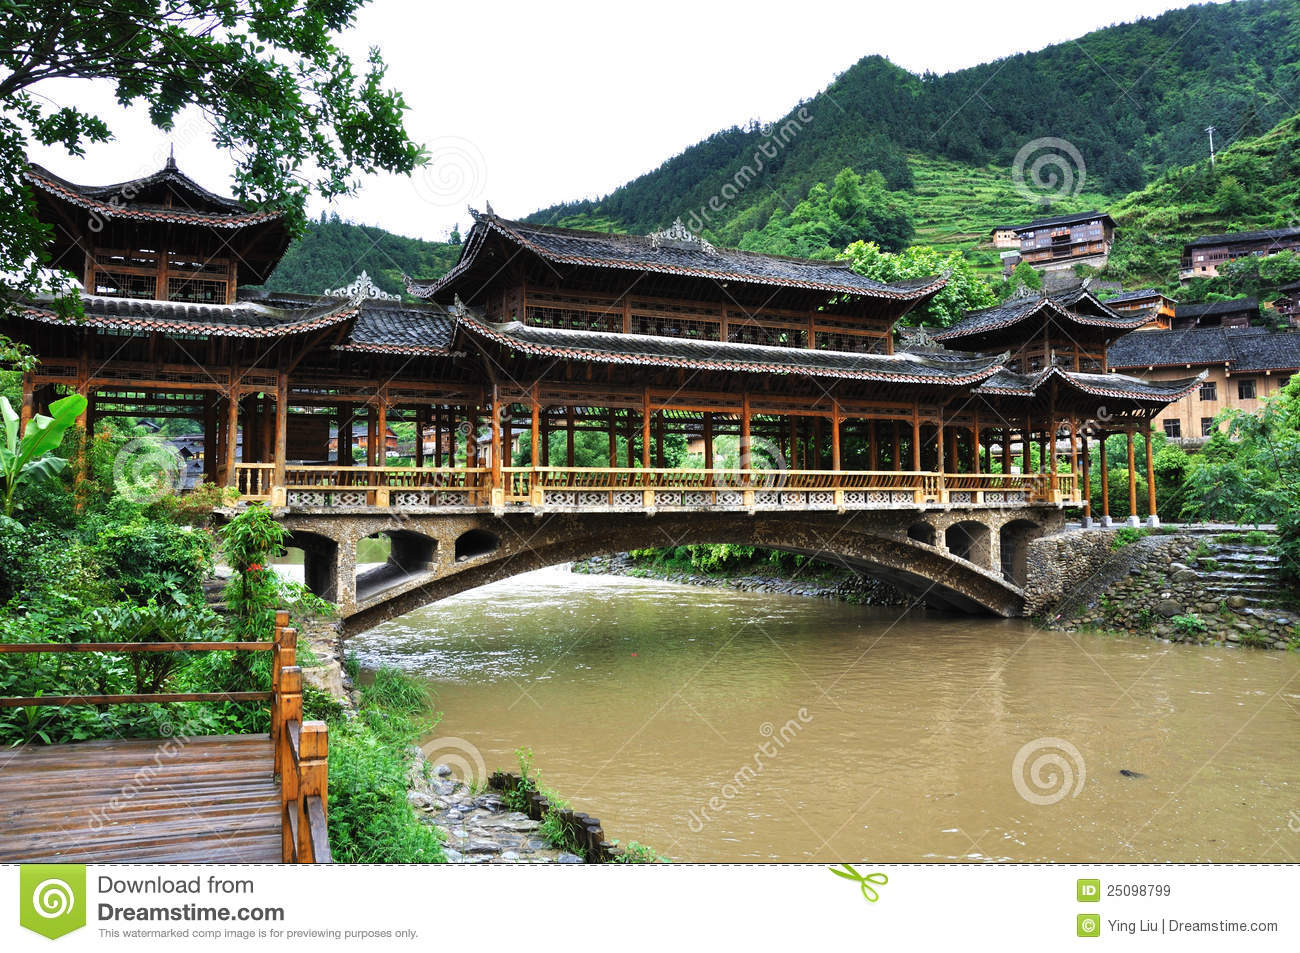 Chinese Gallery Bridge Royalty Free Stock Images - Image: 25098799